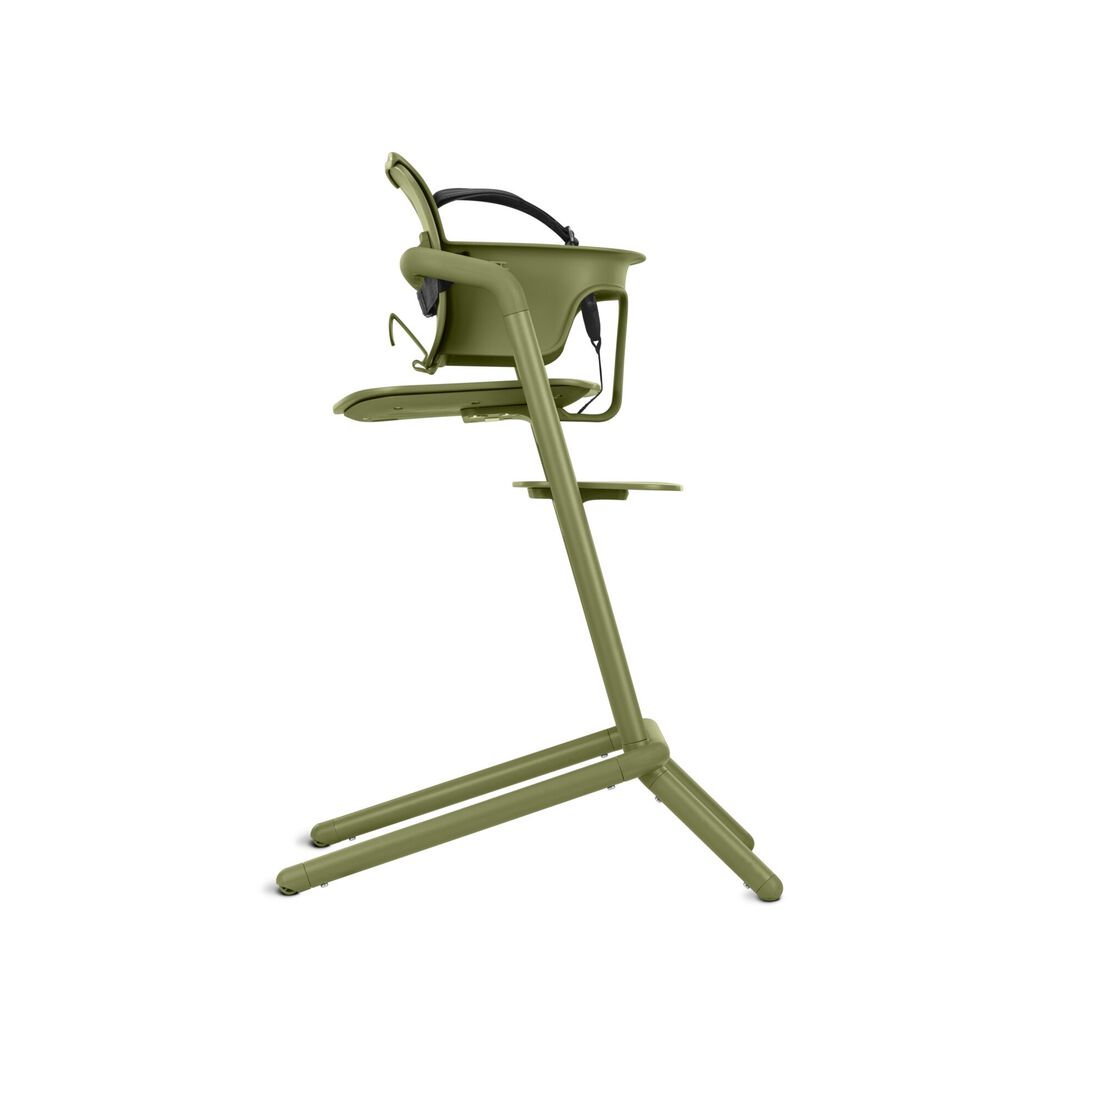 CYBEX Lemo Baby Set 2 - Outback Green in Outback Green large Bild 2